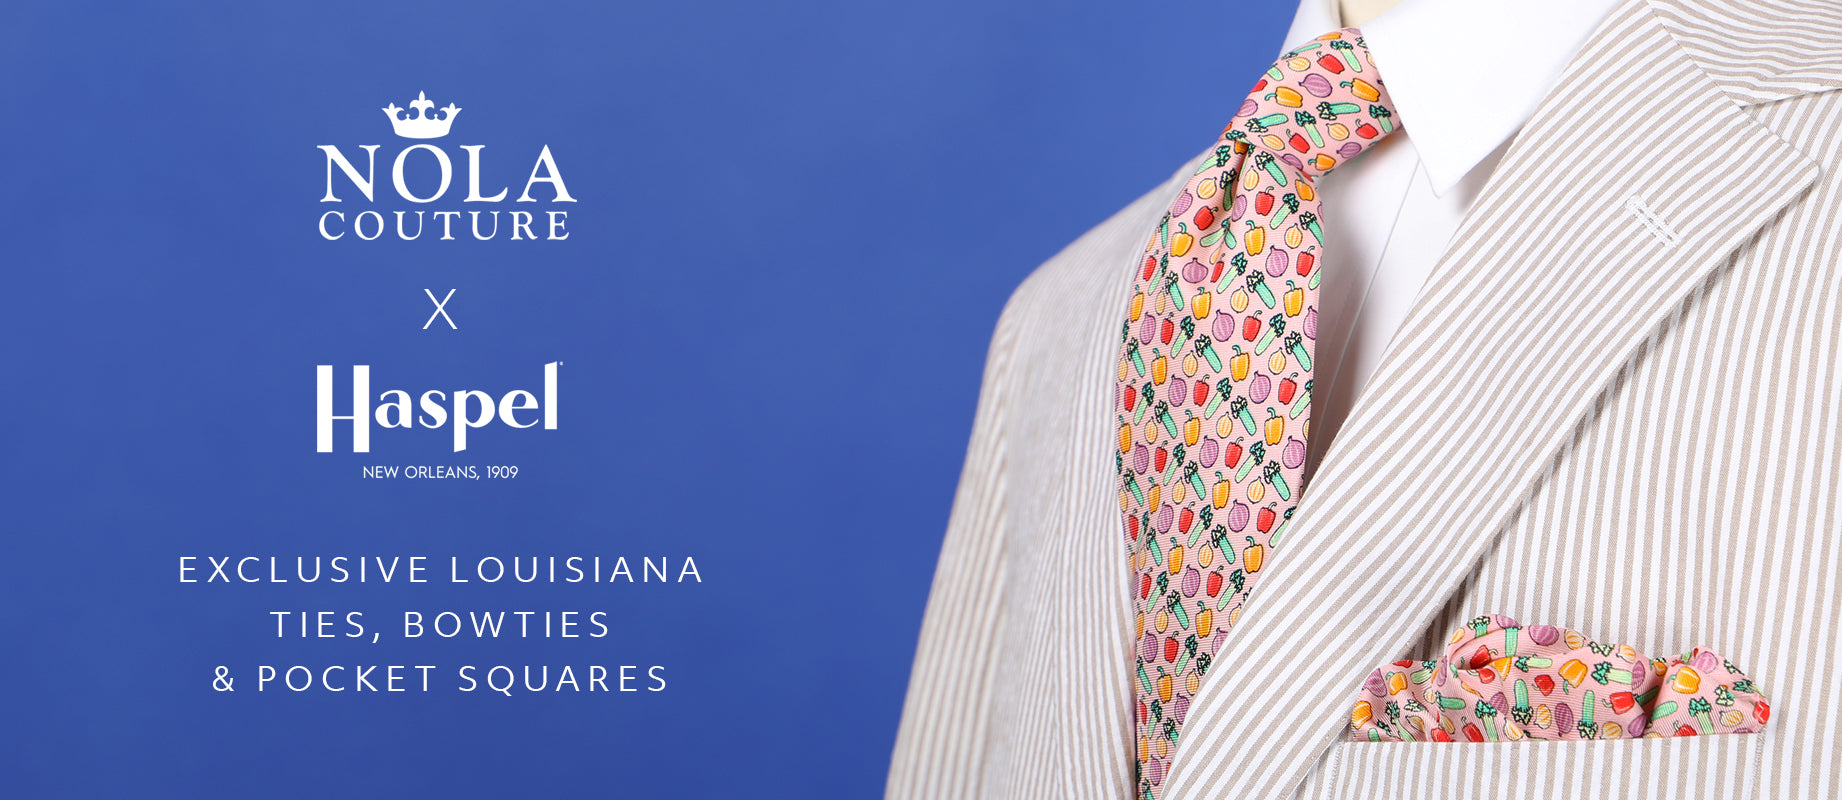 Limited Edition Haspel x NOLA Couture Exclusive Collaboration